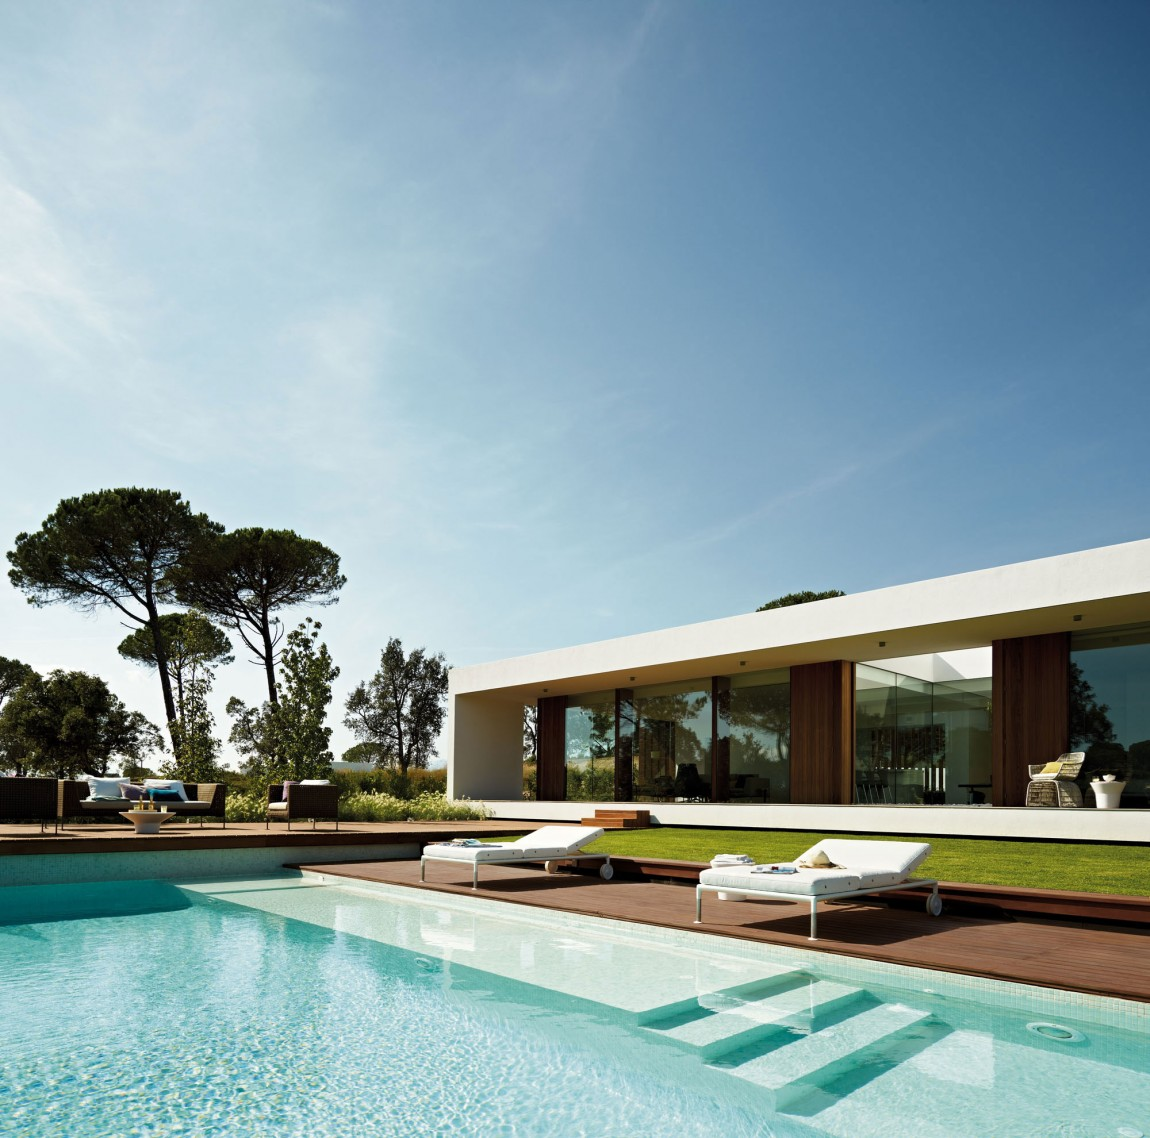 Modern villa indigo catalonia spain architecture for Pool villa design